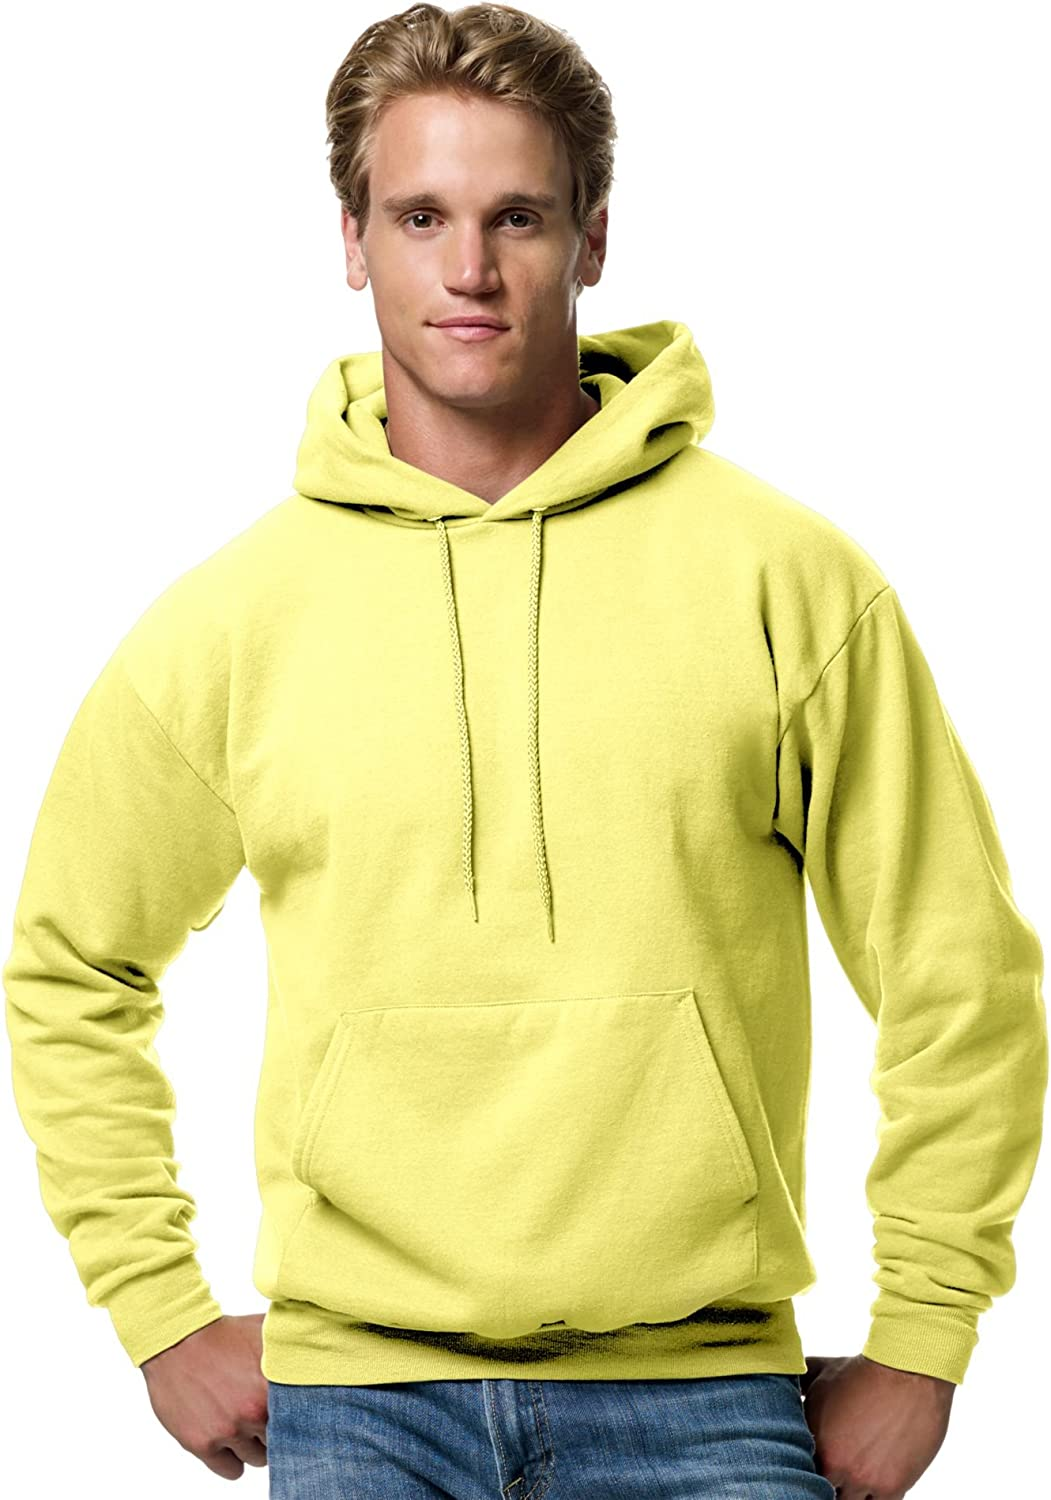 90s Outfits for Guys | Trendy, Party, Cool, Casaul Hanes Mens Pullover EcoSmart Hooded Sweatshirt  AT vintagedancer.com